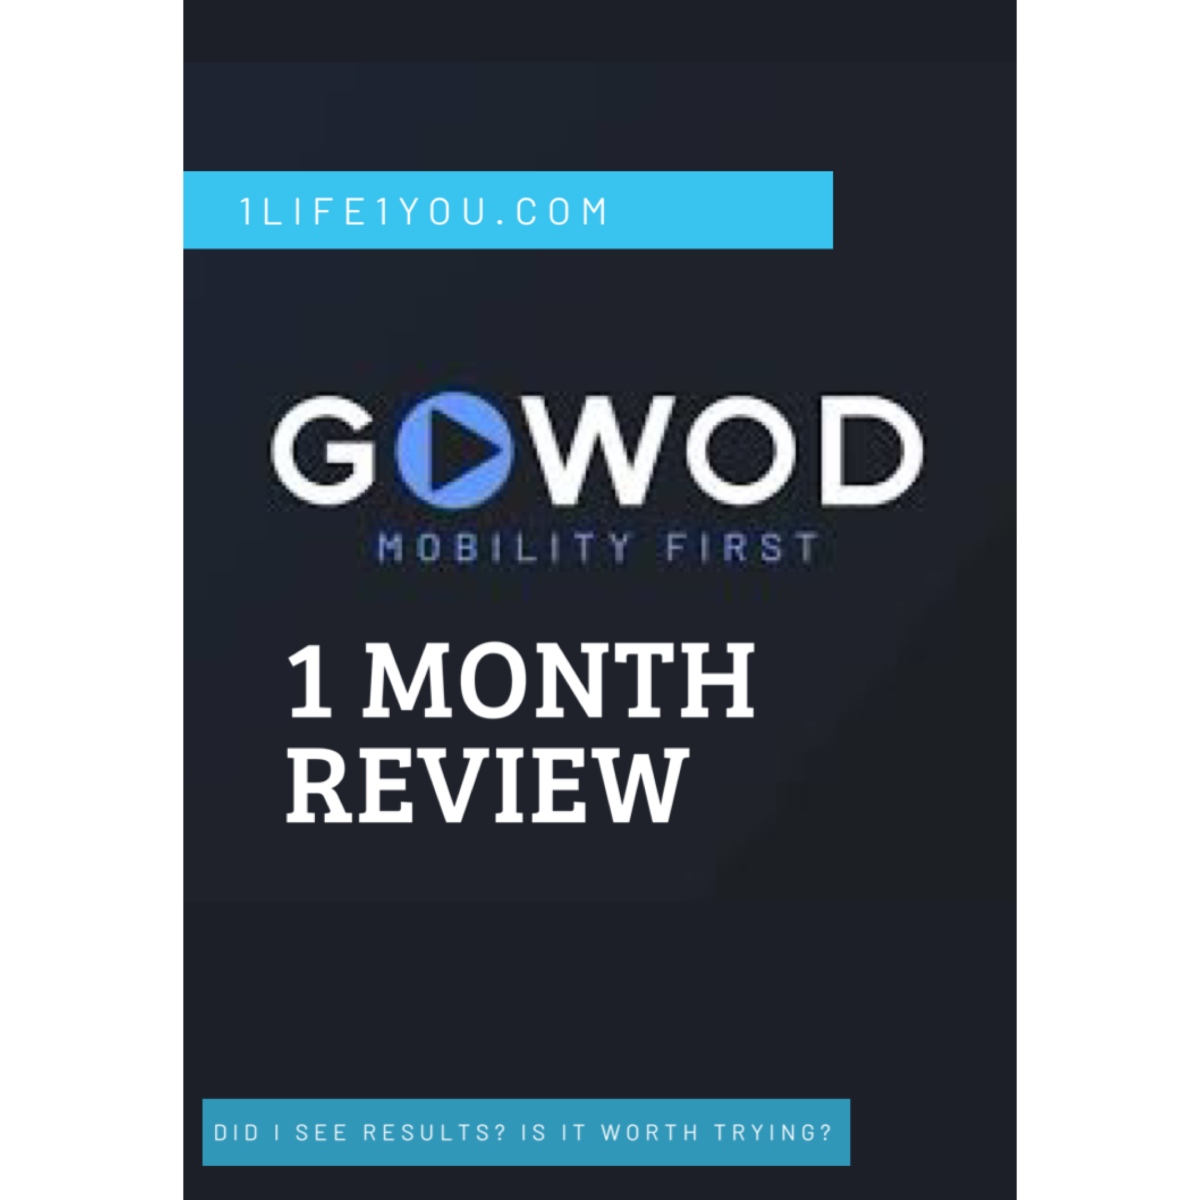 GoWoD Mobility App 1 Month Review